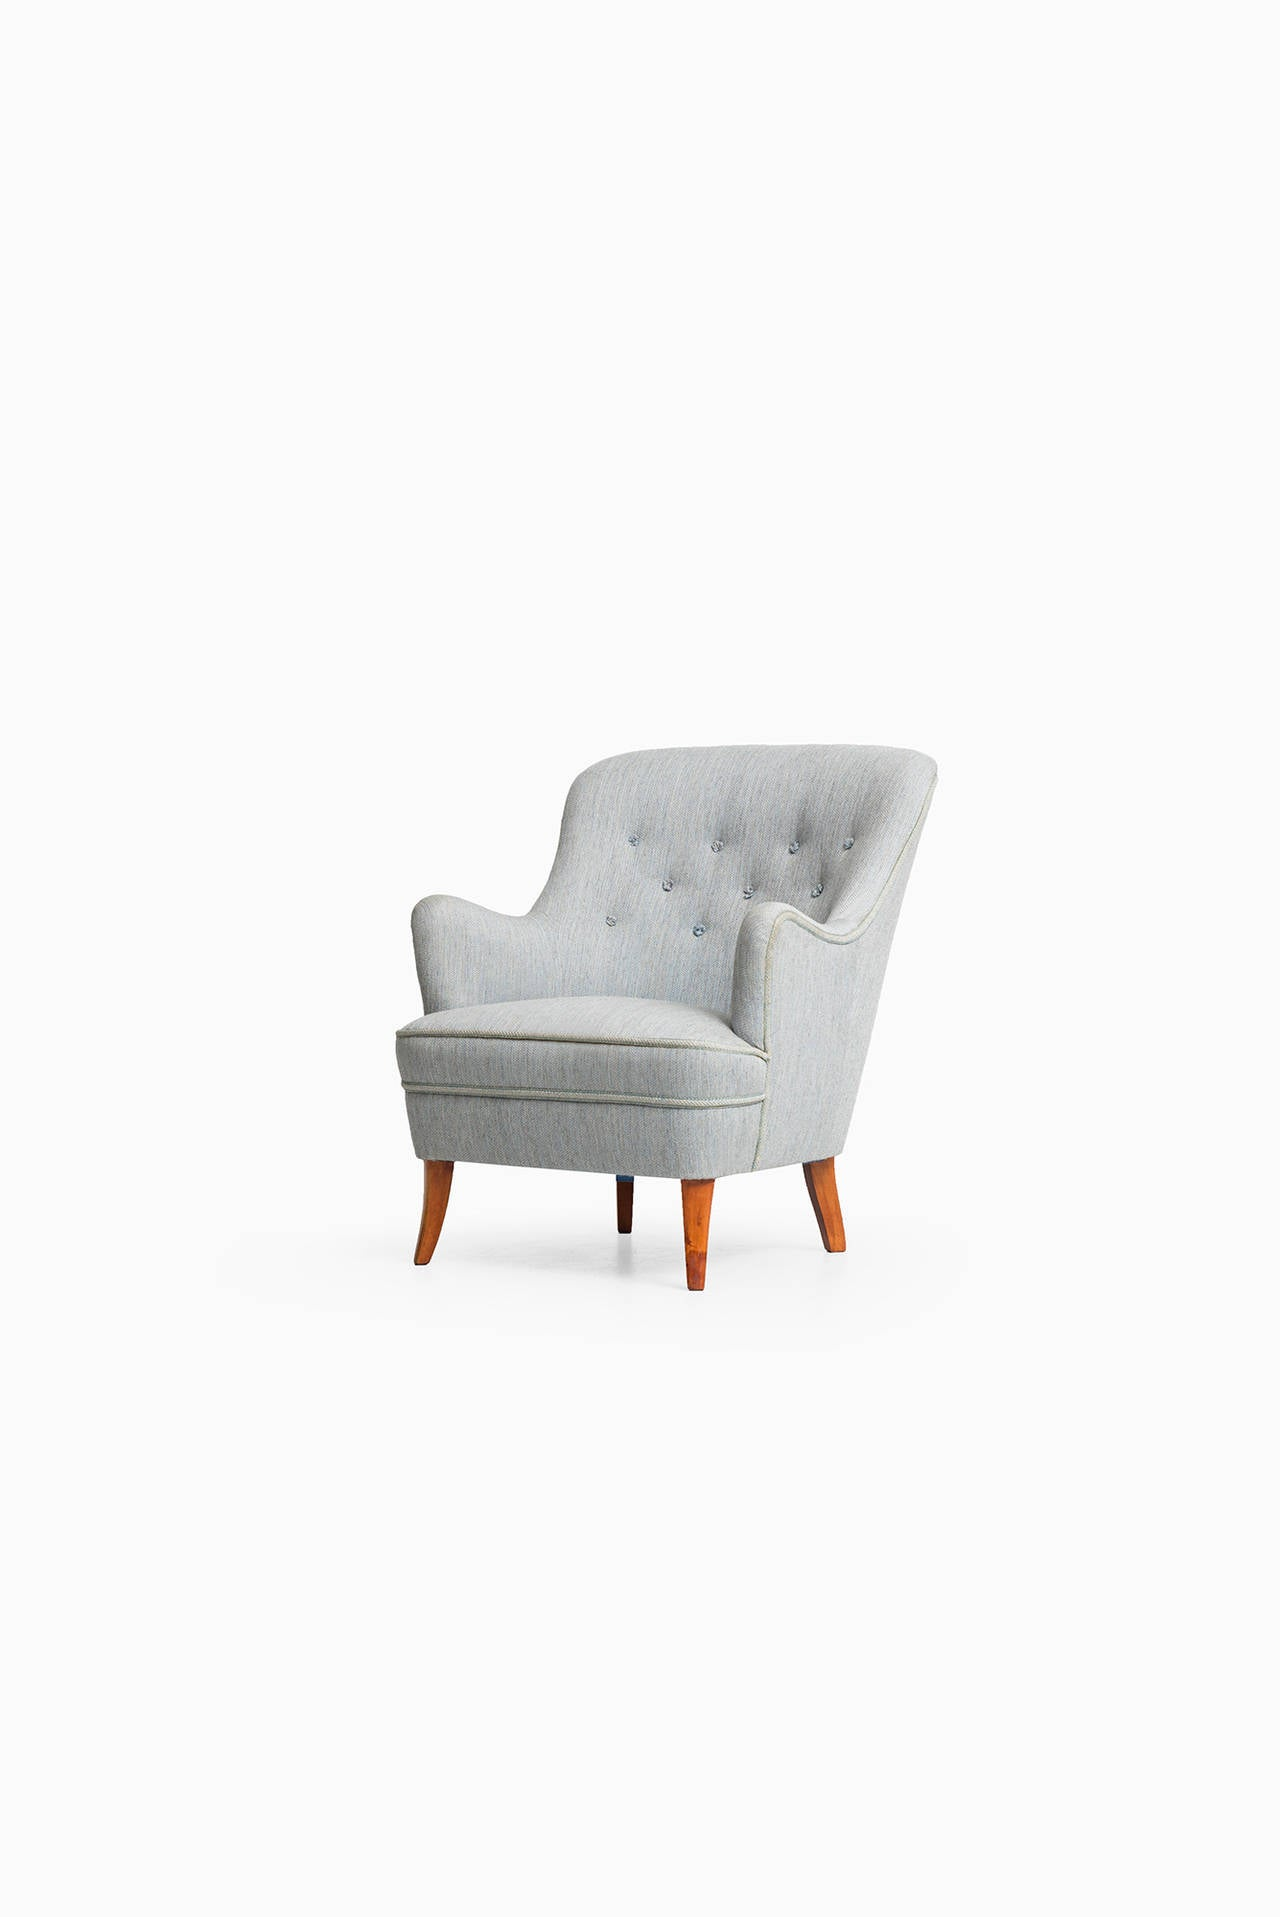 Rare easy chair designed by Carl Malmsten. Produced by O.H Sjögren in Tranås, Sweden. Matching sofa and easy chair available.